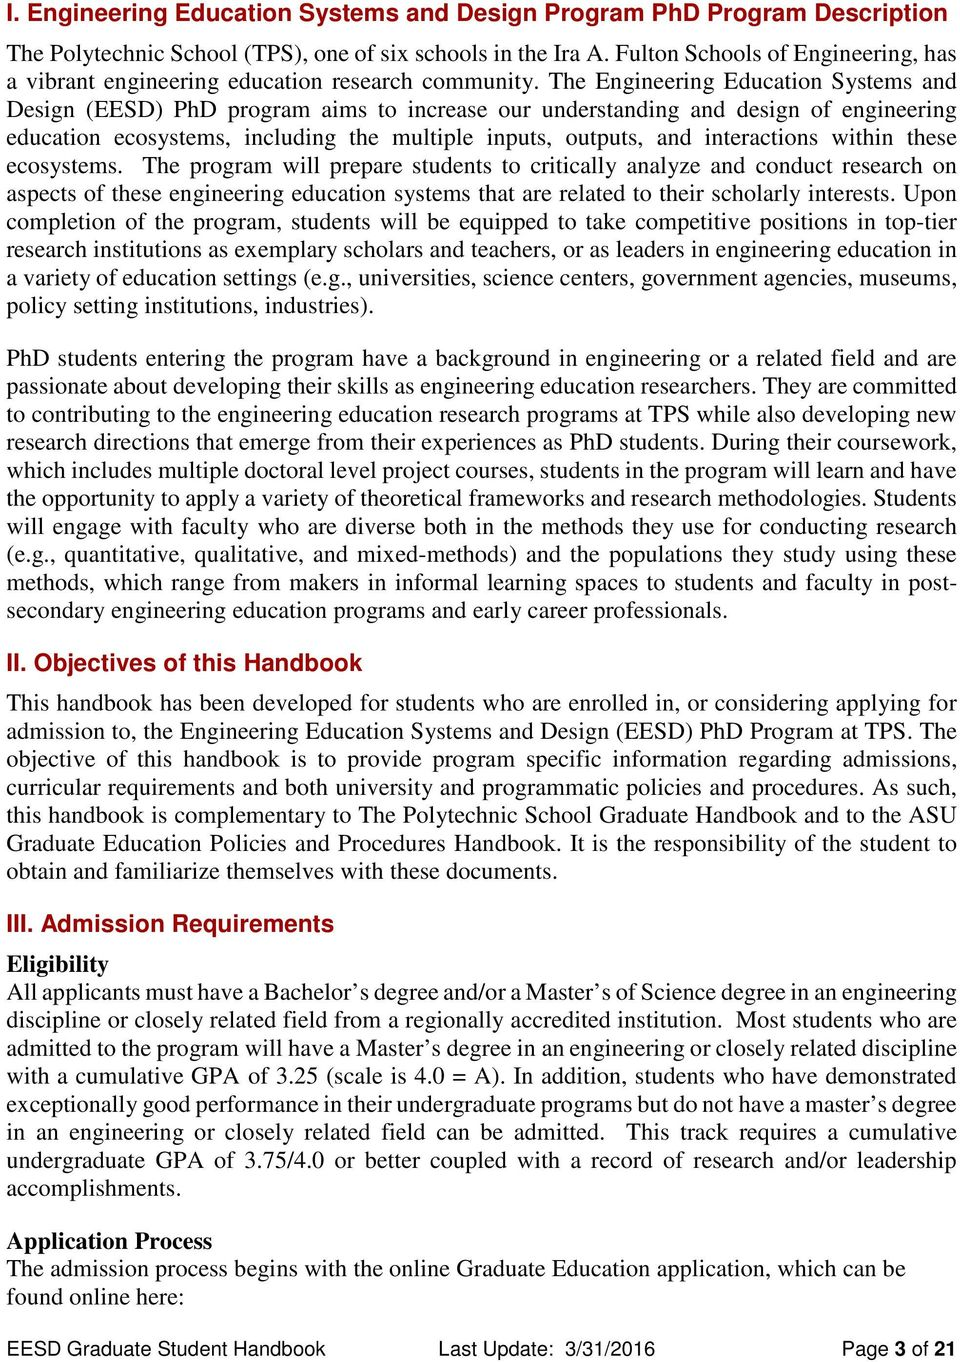 phd in engineering education systems and design eesd